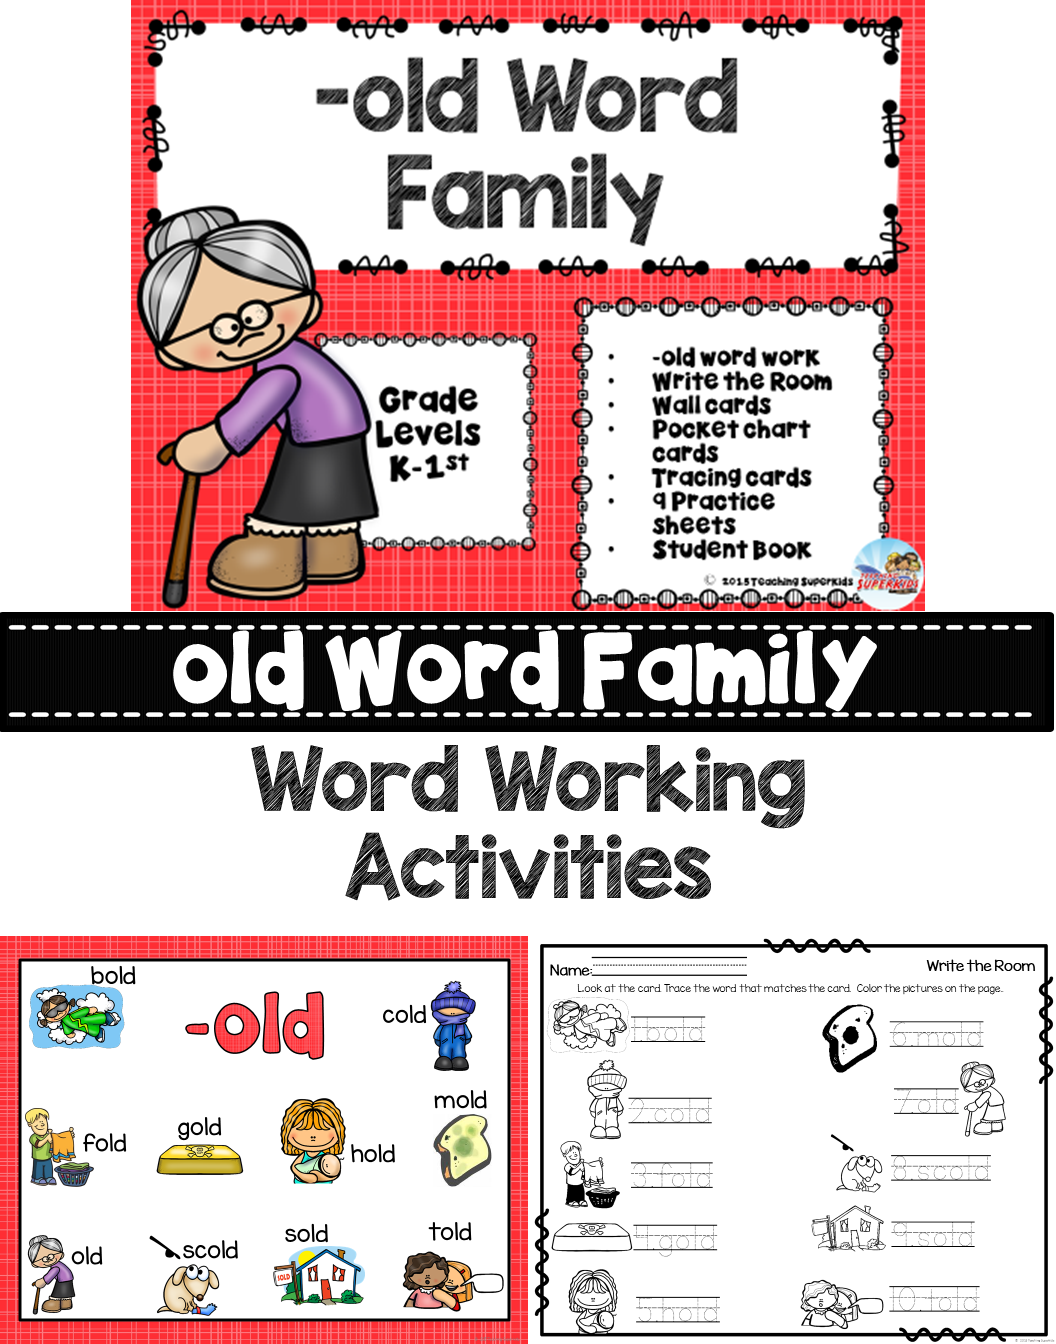 Old Word Family